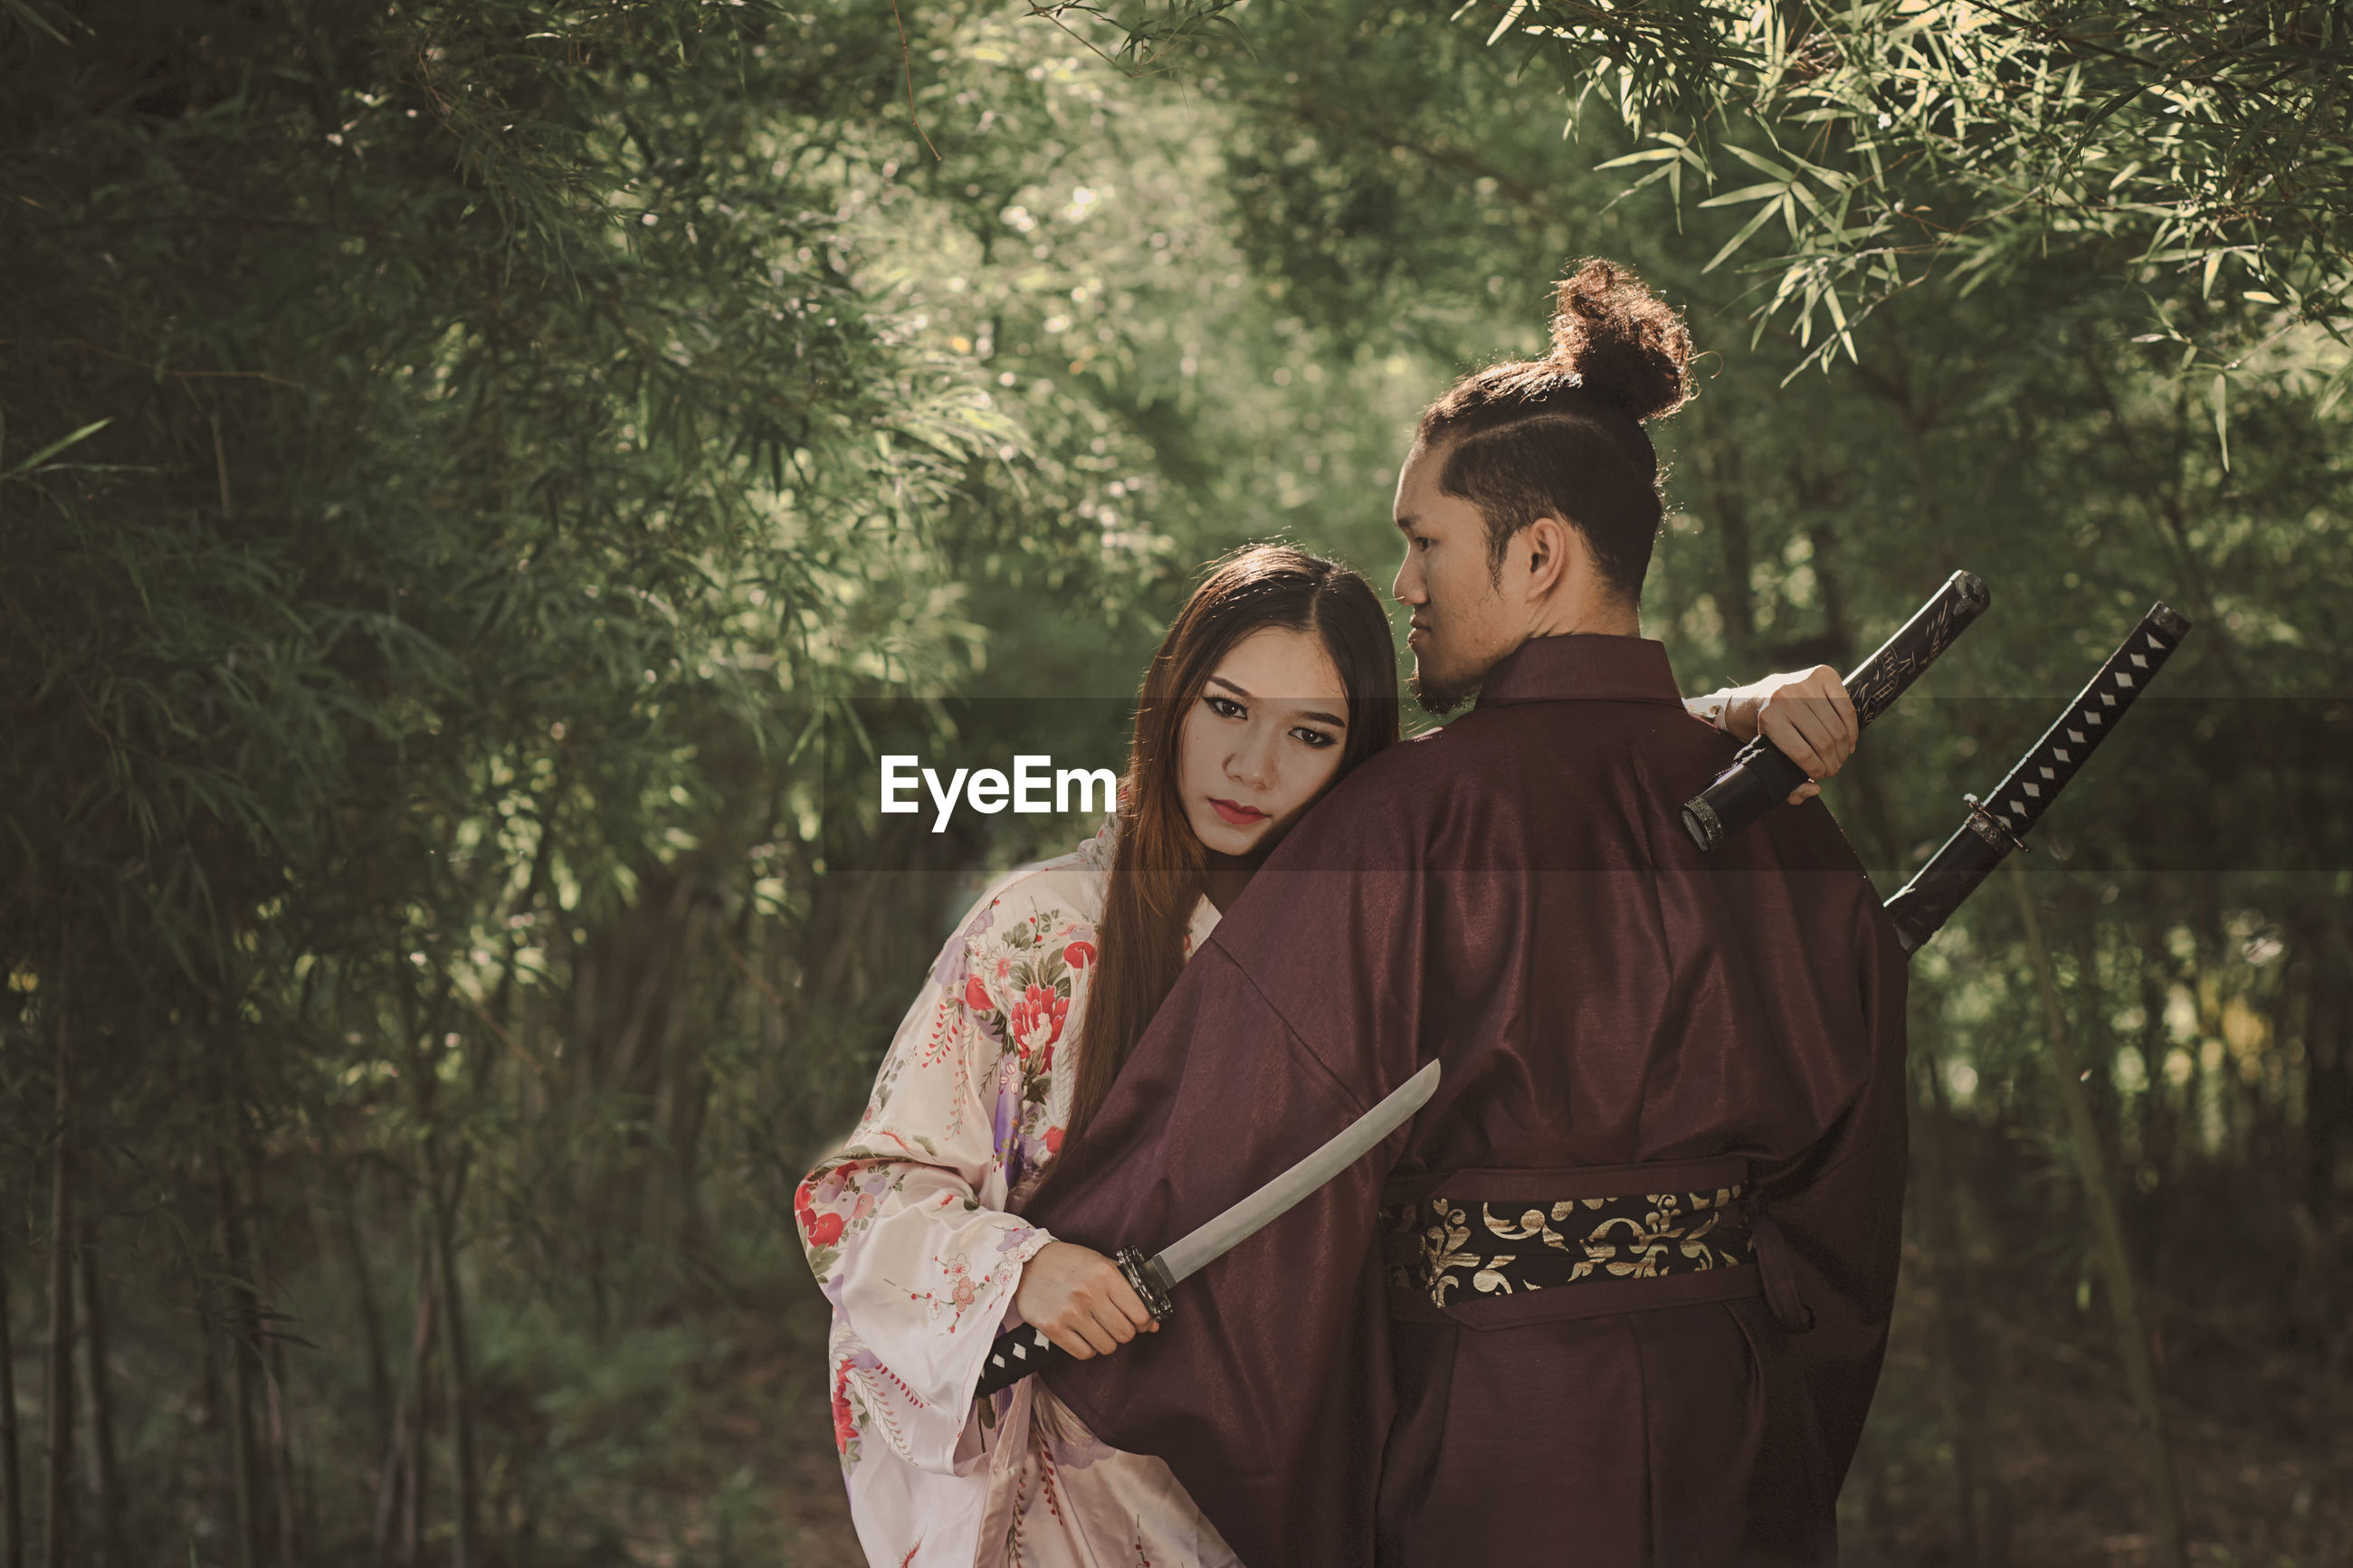 Couple with sword standing in forest